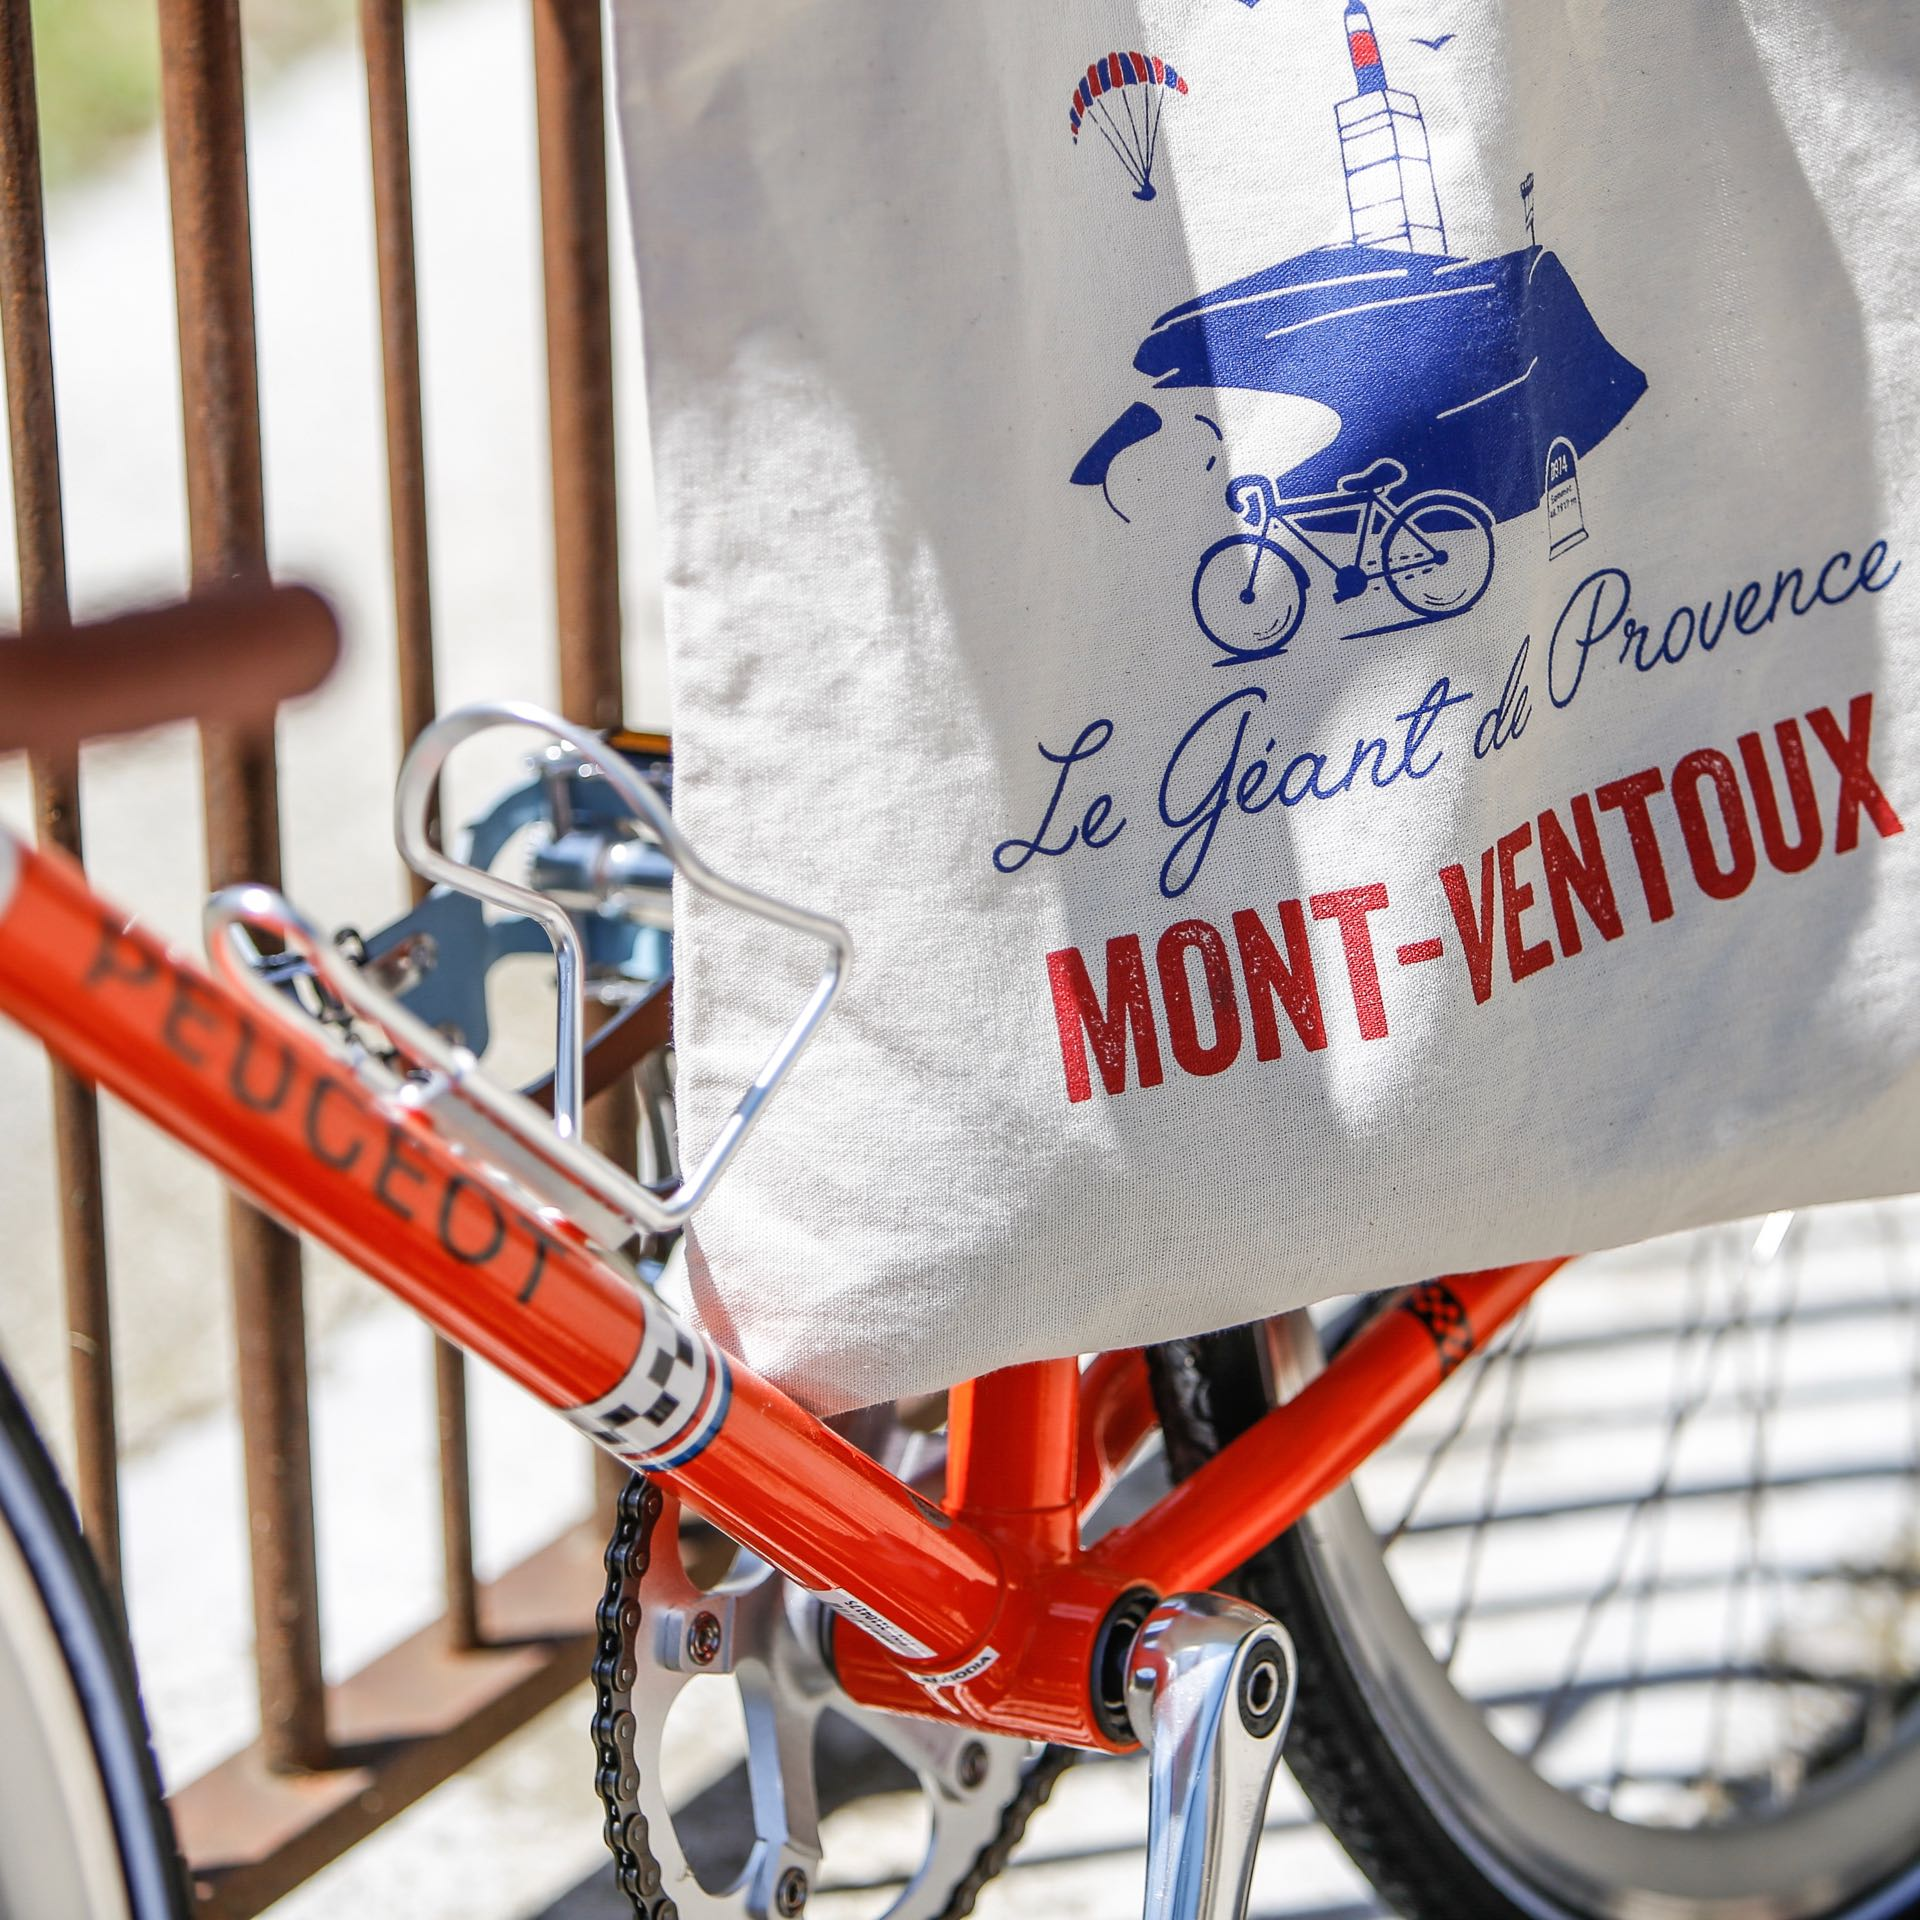 Bicycle at the Mont Ventoux